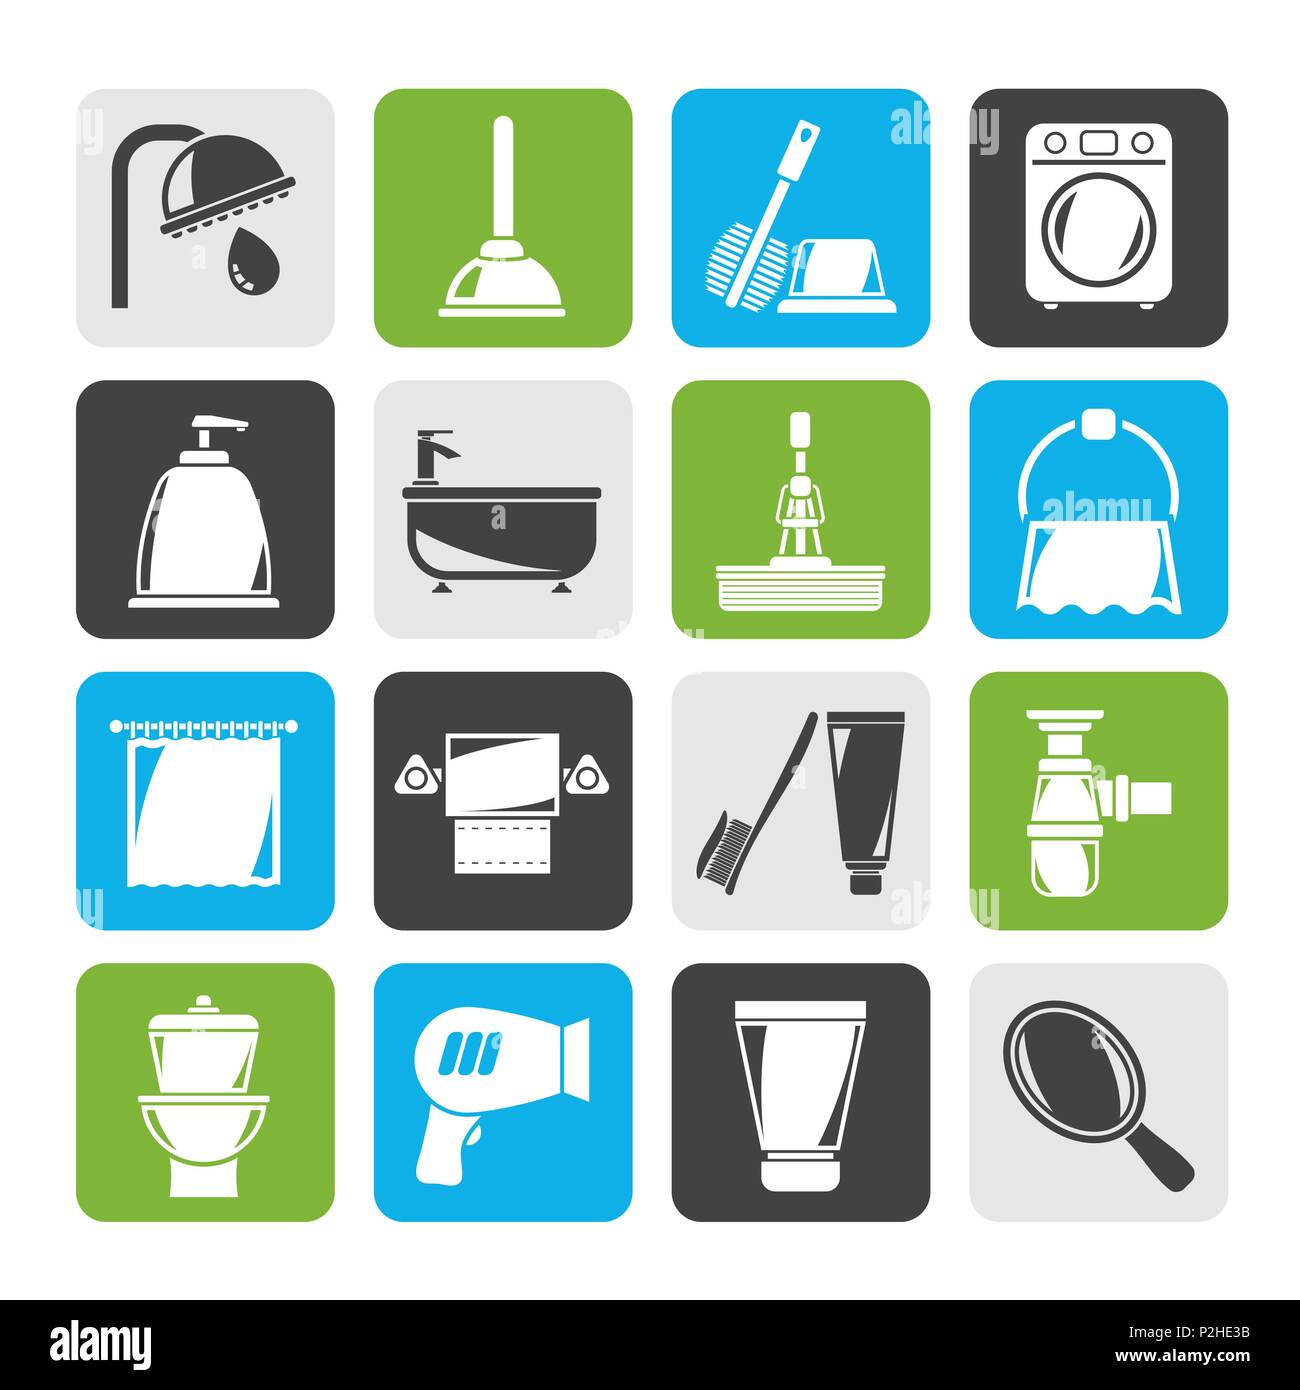 Silhouette Bathroom and hygiene objects icons -vector icon set - Stock Image